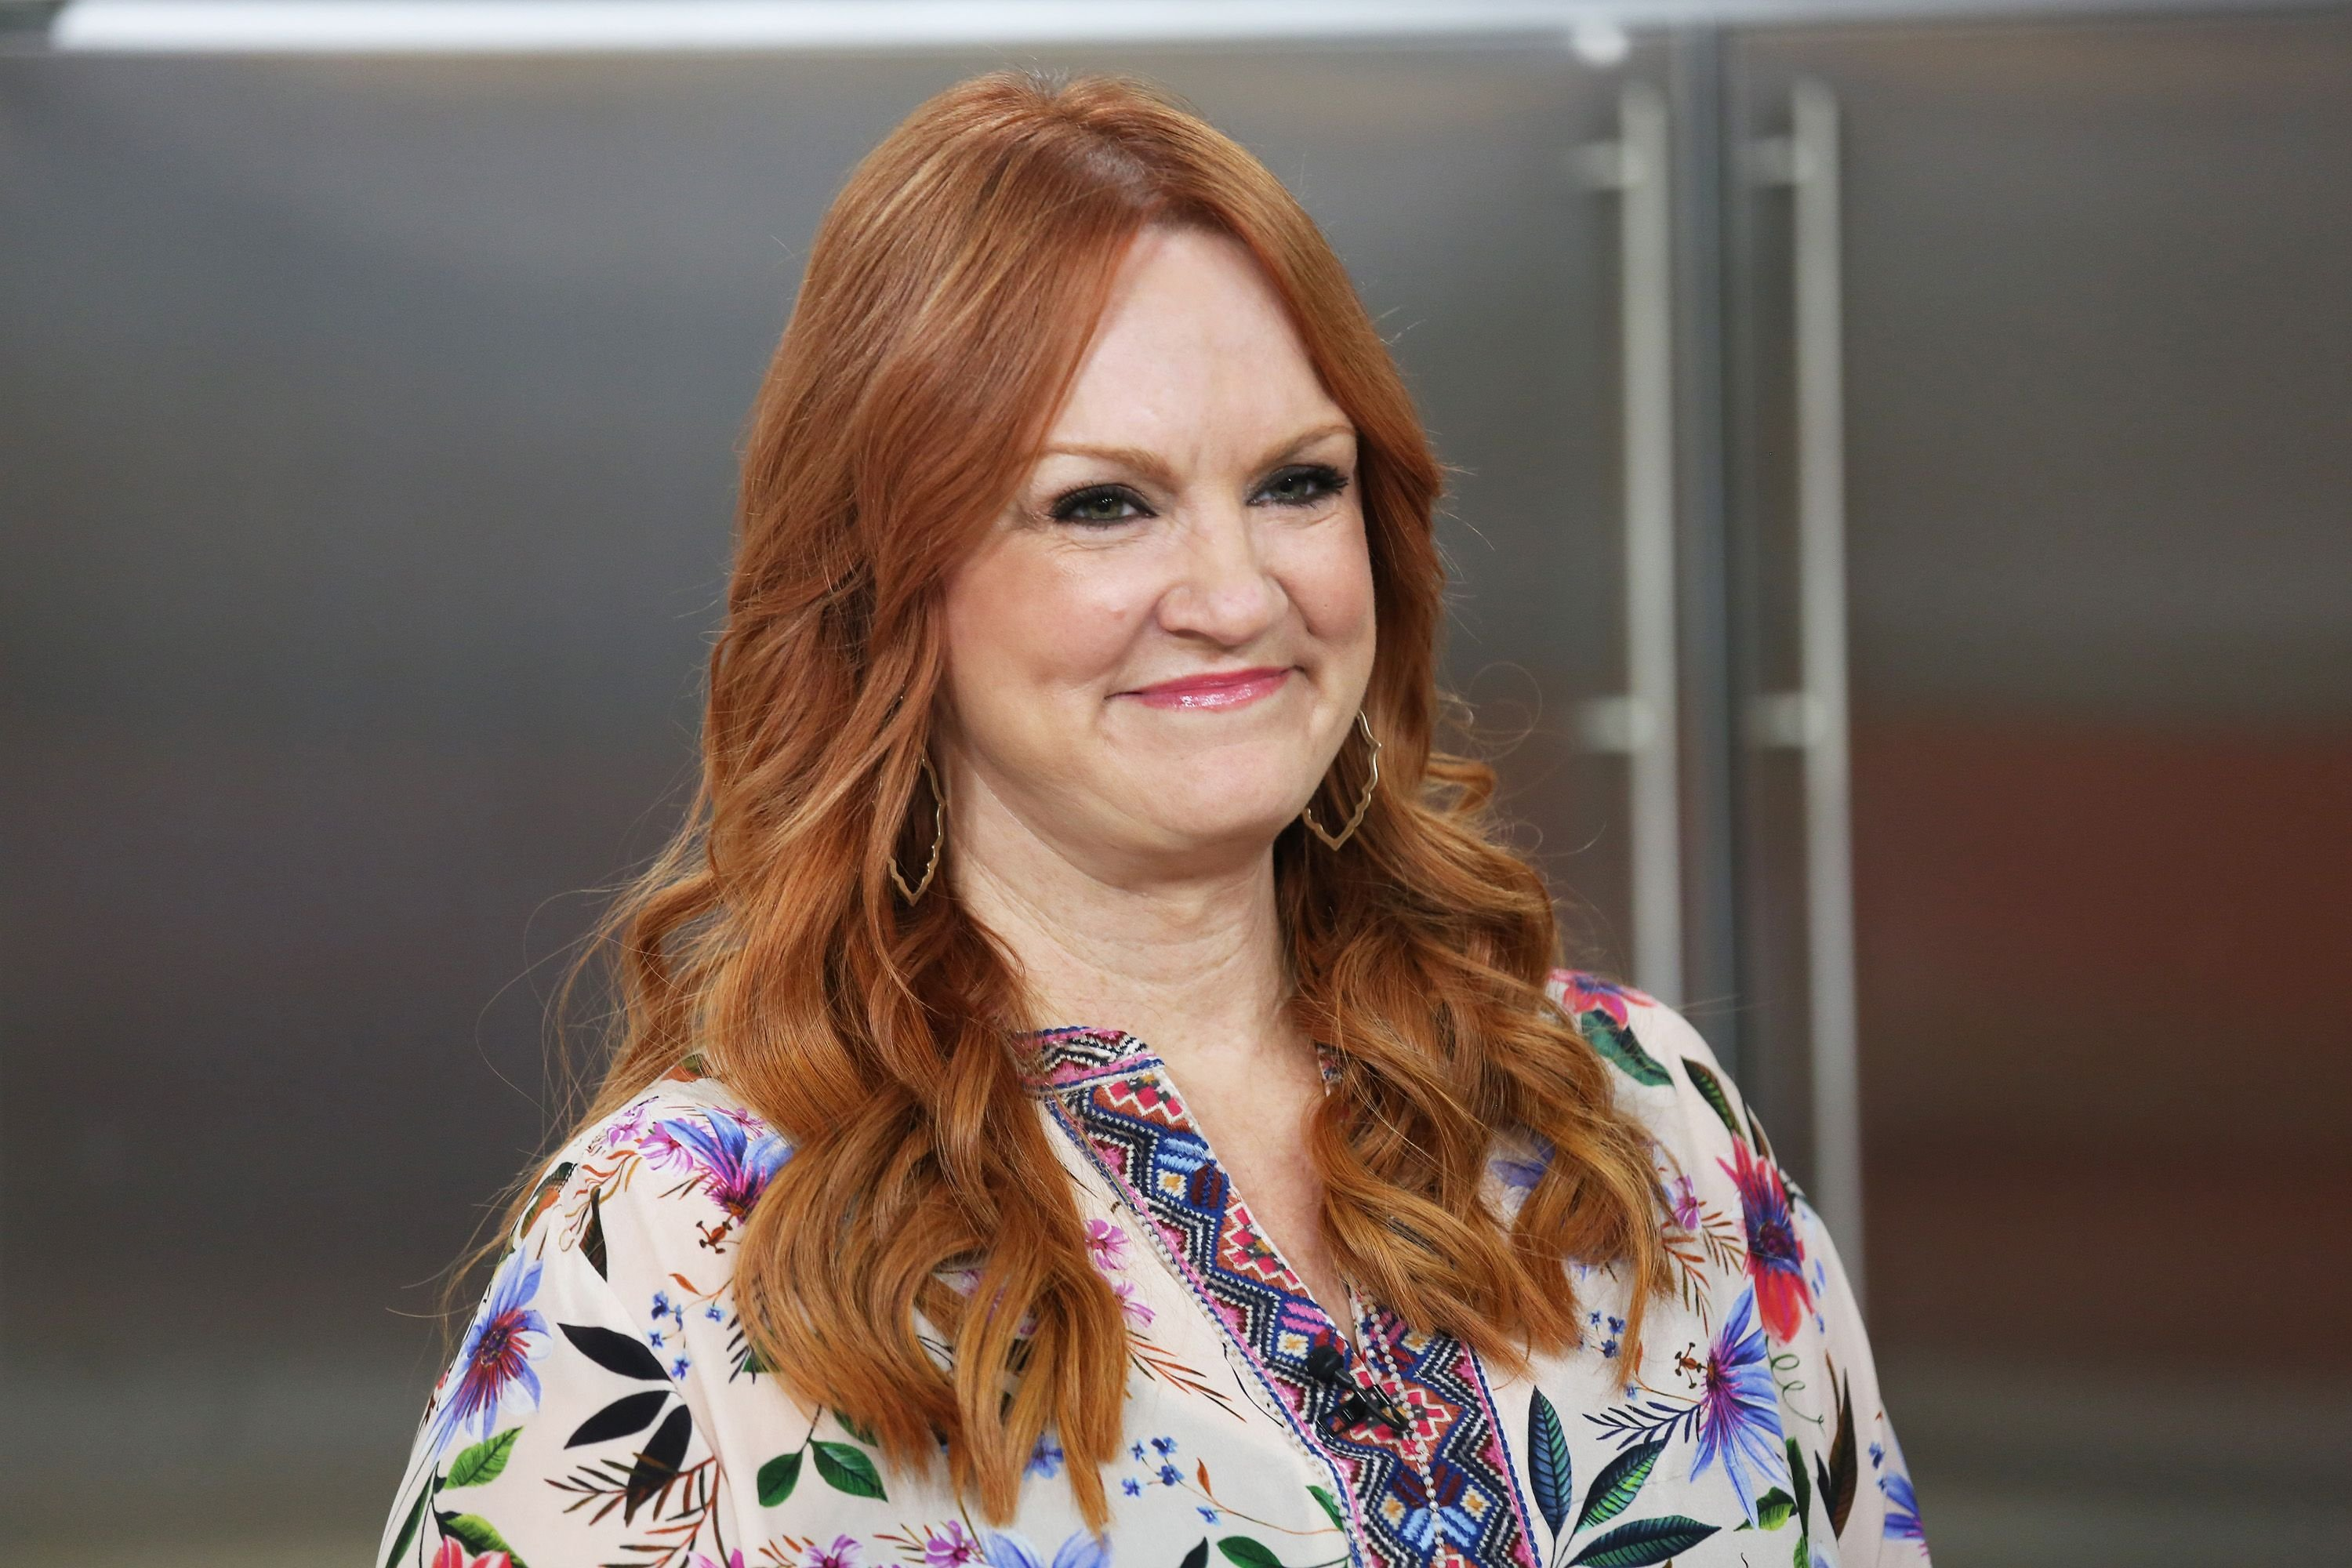 Ree Drummond at Today - Season 68 on Tuesday October 22, 2019 | Photo: Getty Images